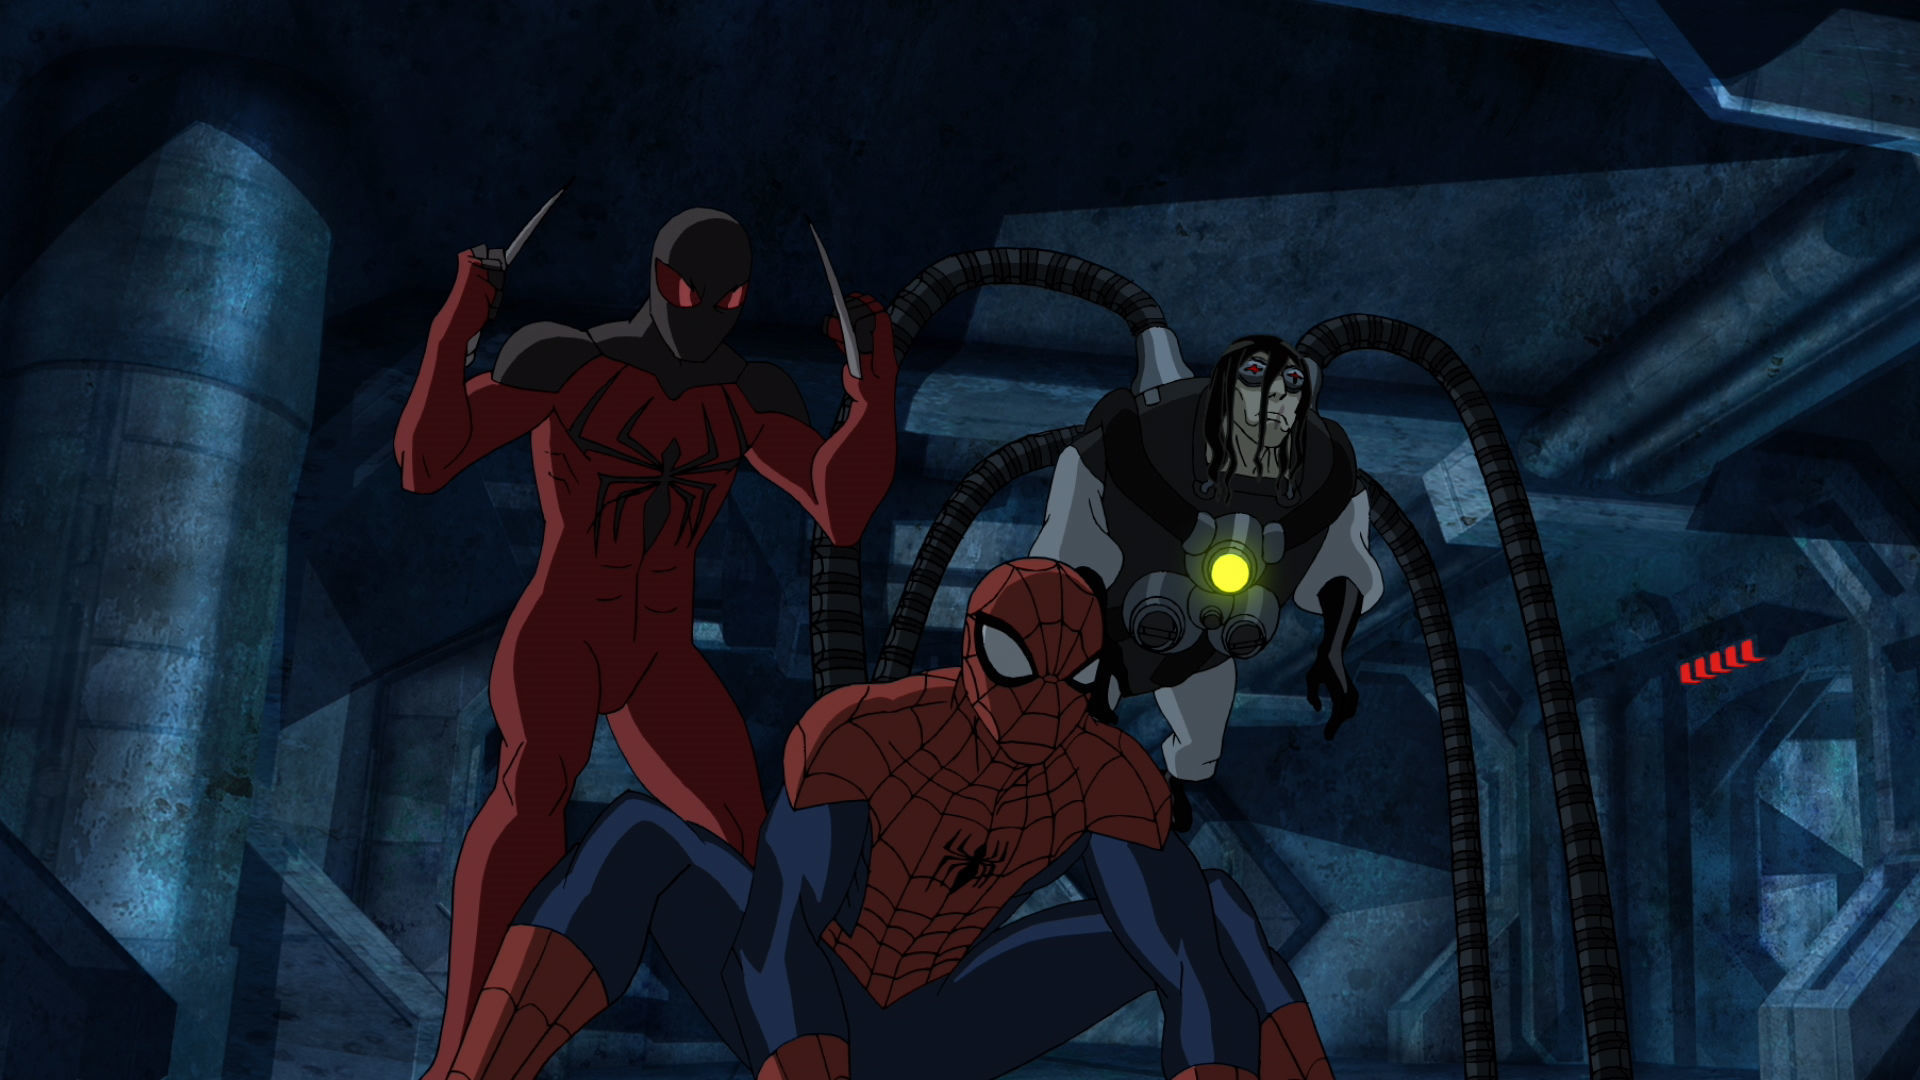 The Spider Slayers - Part 2